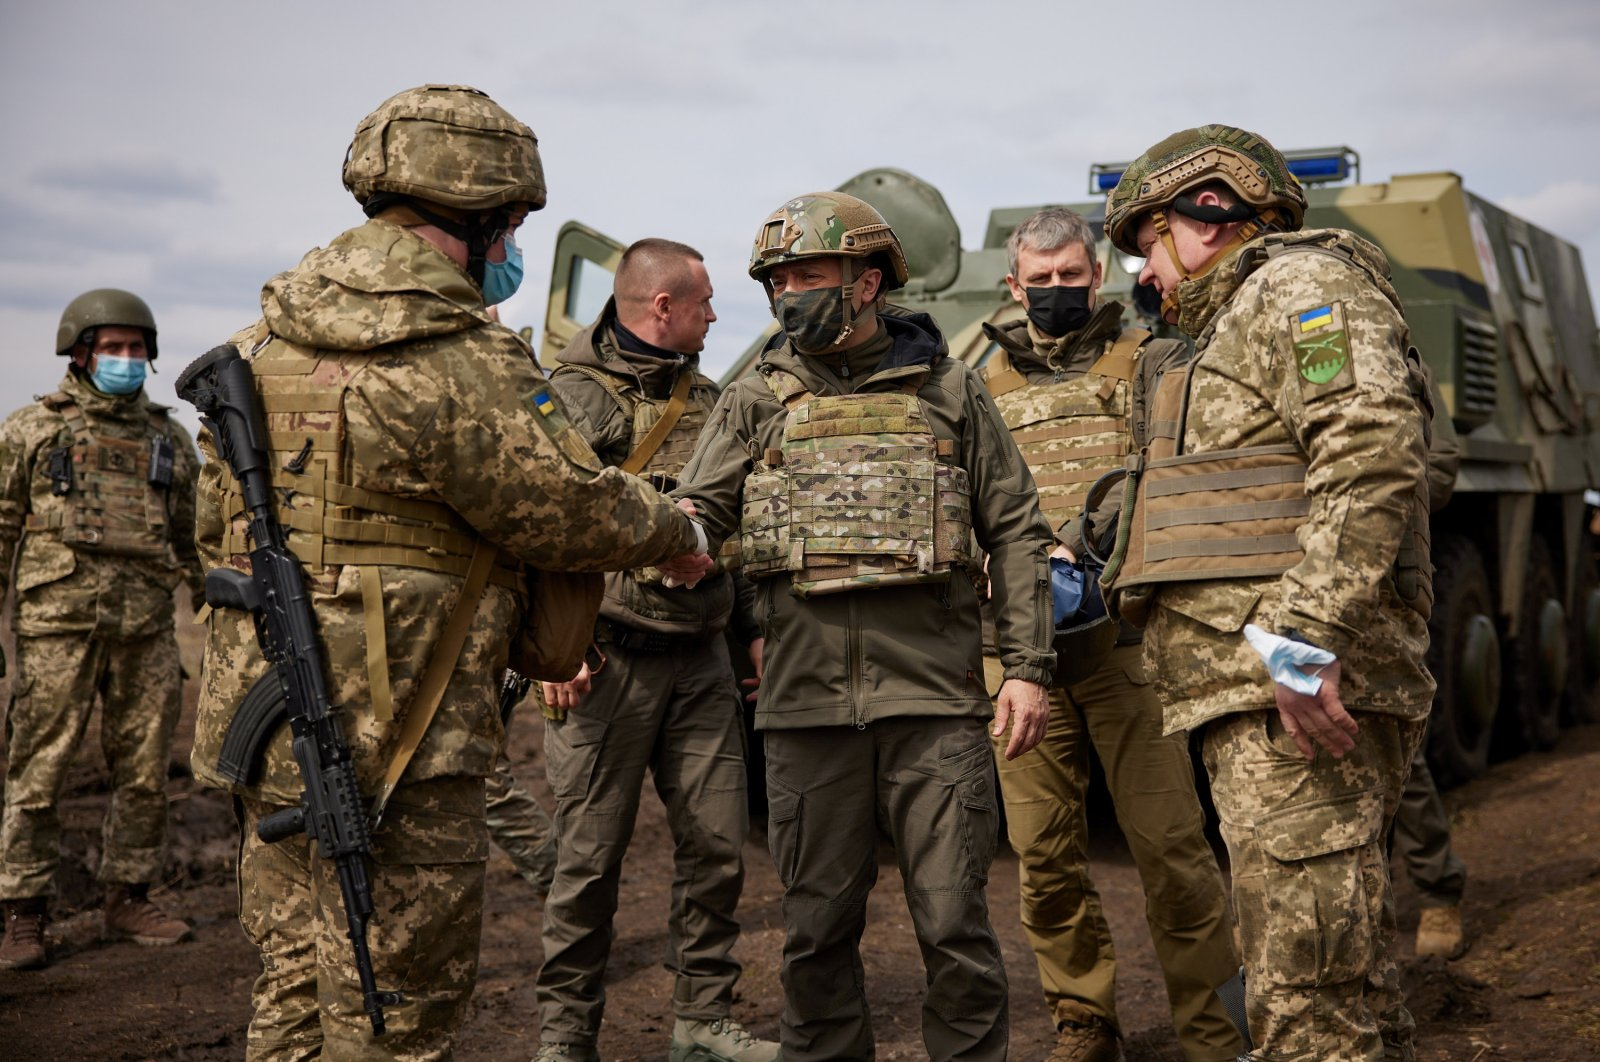 Ukraine's President Volodymyr Zelenskiy visits Ukraine's armed forces near the frontline with Russian-backed separatists during his working trip in the Donbass region of Ukraine, April 8, 2021. (Reuters Photo)